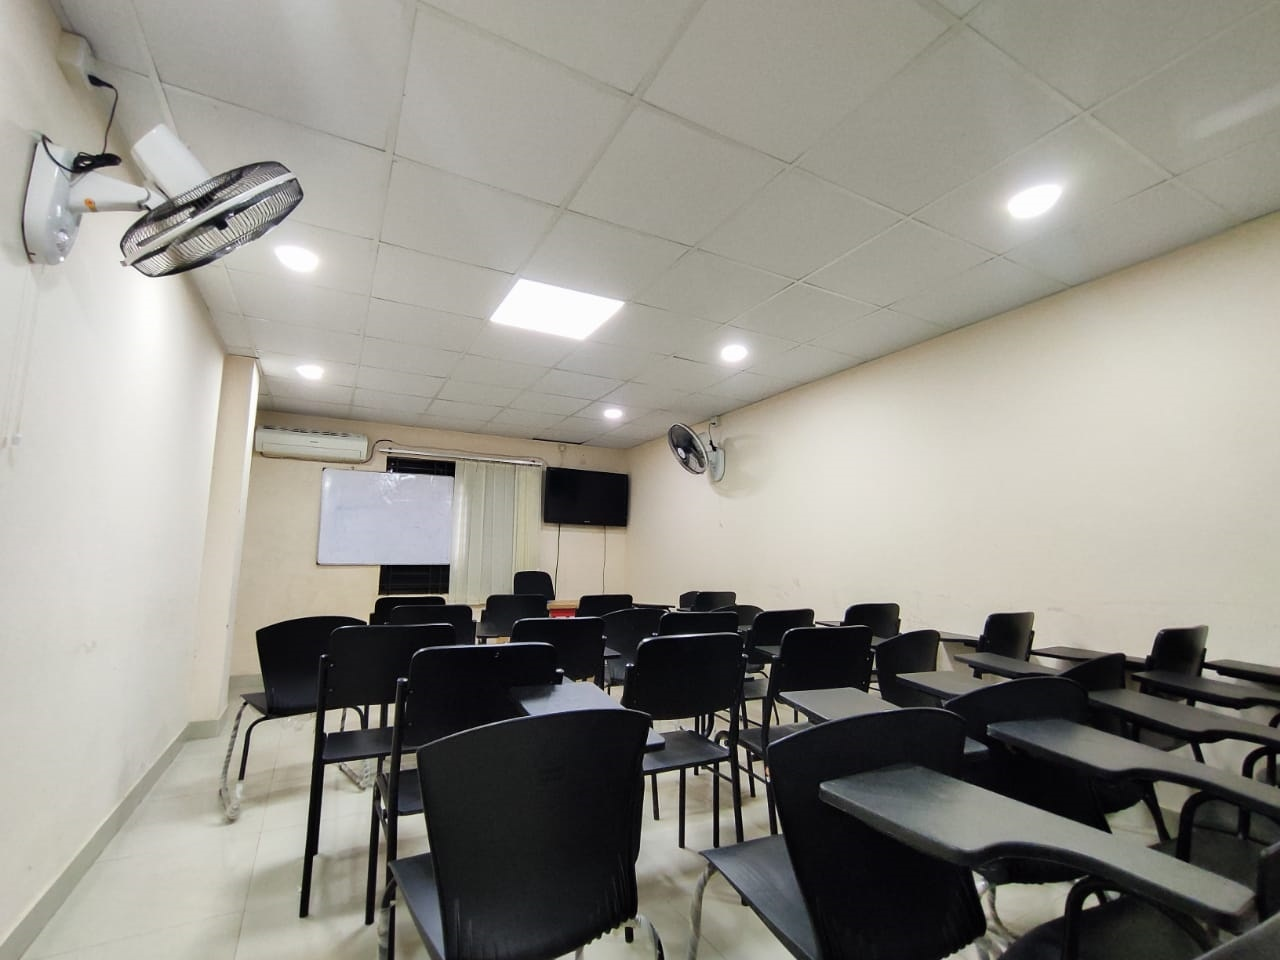 One of the classrooms of OHI equipped with latest technology and soothing eye-catching environment